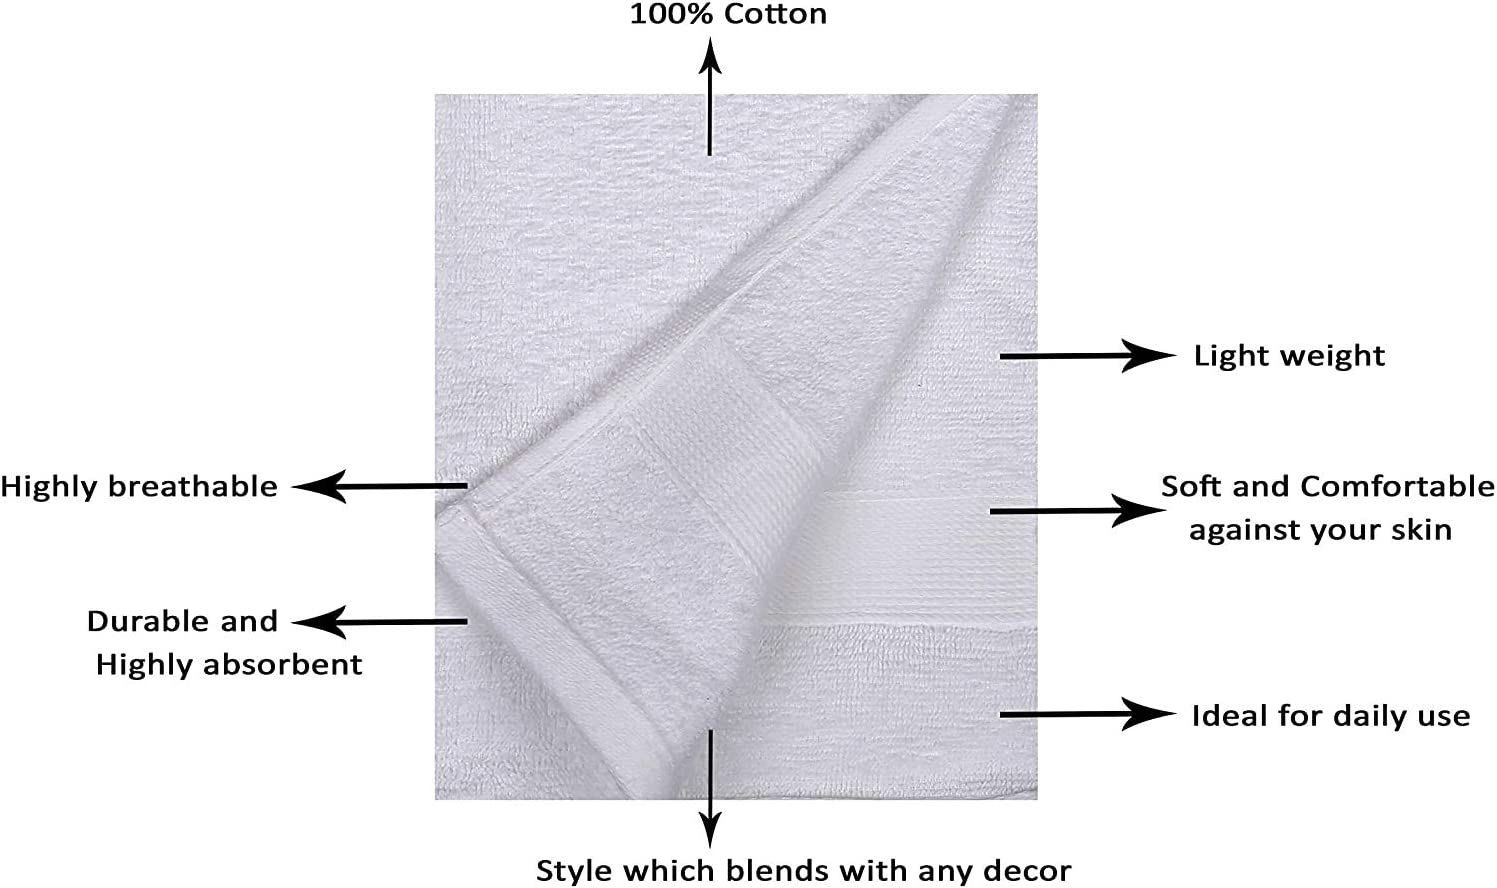 Luxury Towels for Daily Use RAJRANG BRINGING RAJASTHAN TO YOU Cotton Hand Towels for Home And Kitchen 71x41 cm Soft Towels for Men And Womens Yellow And Black Color